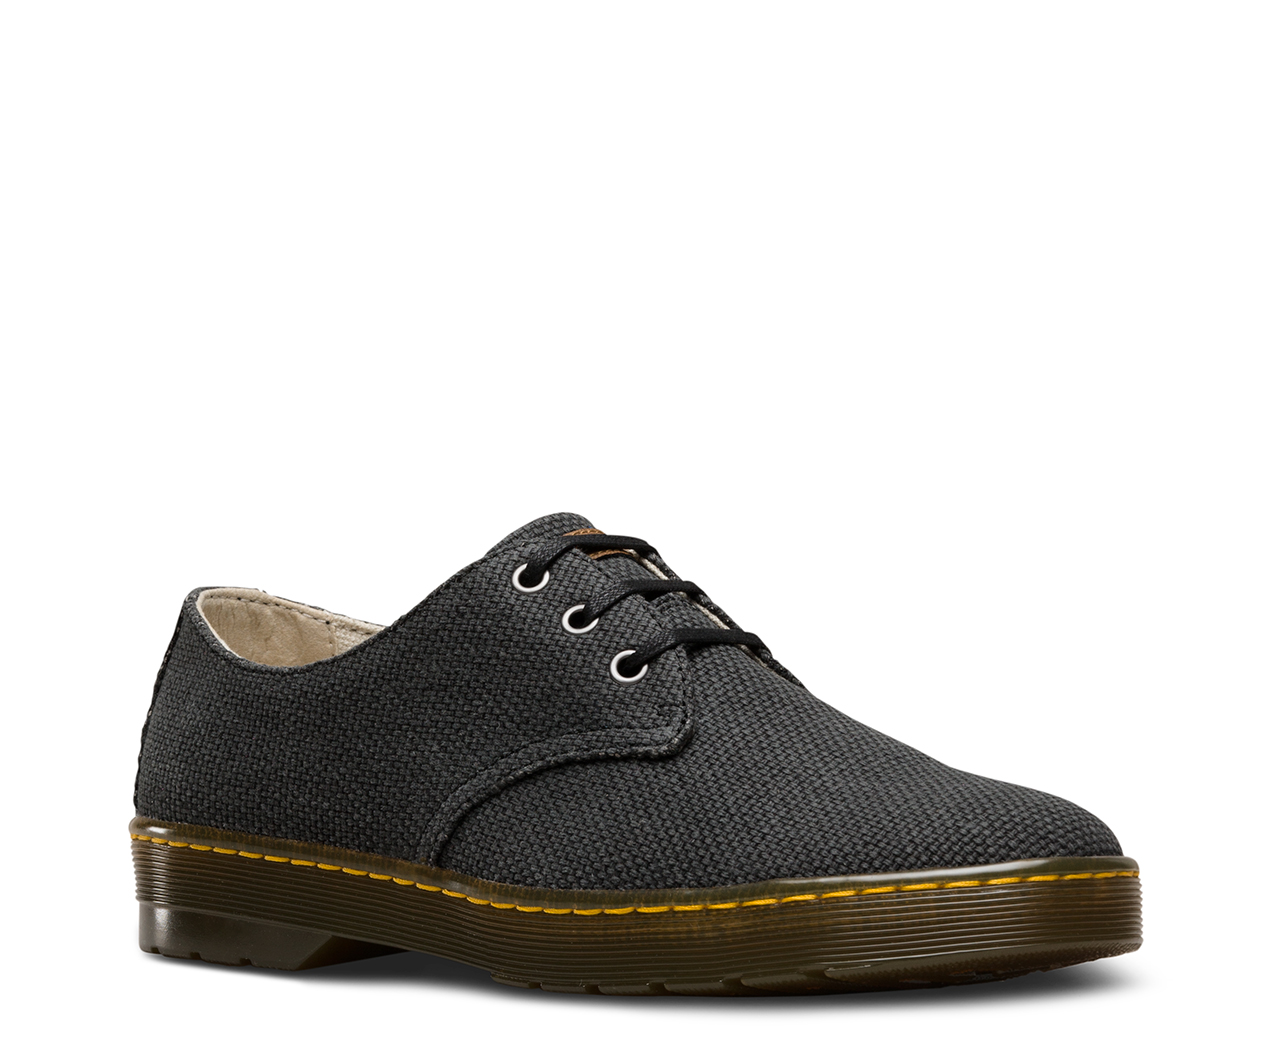 Outlet Mens Dr Martens Delray Shoe Dark Brown Canvas Casual